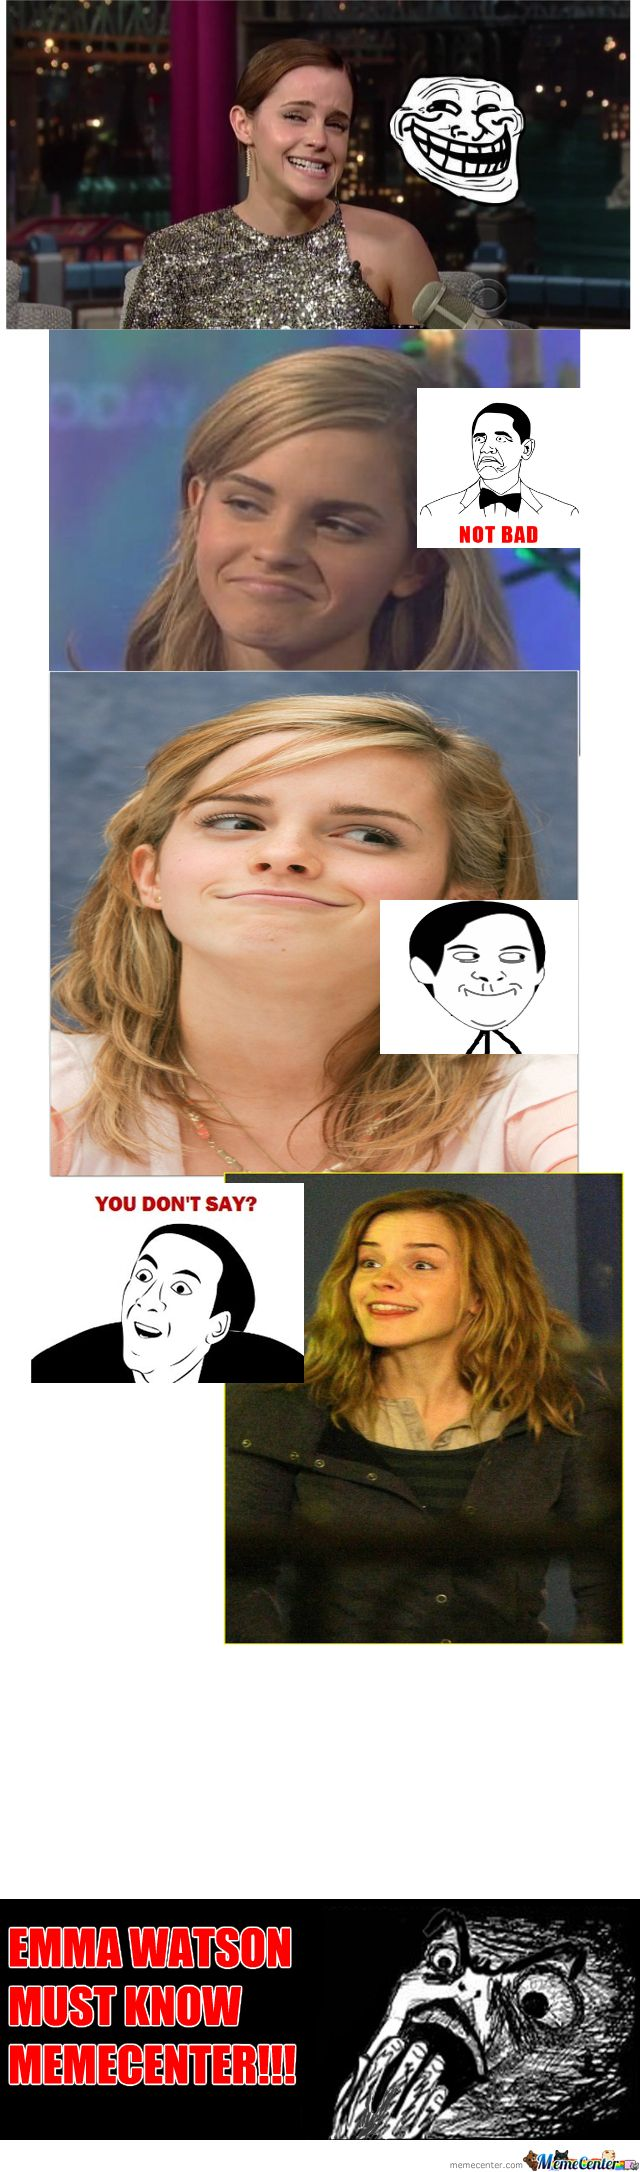 Emma Watson Is Awesome!